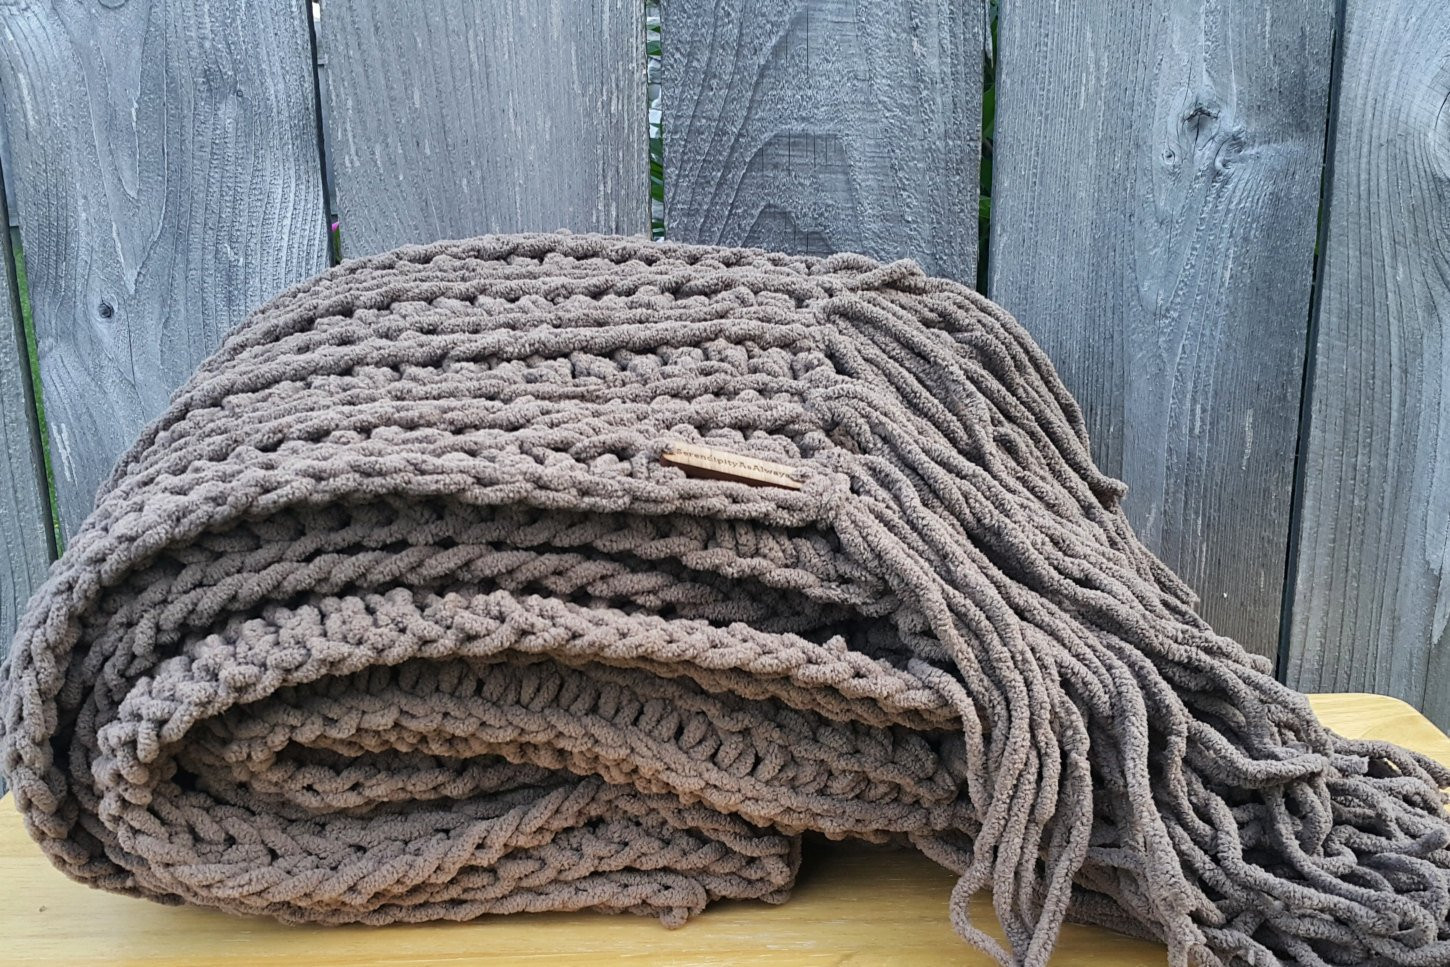 Bulky Knit Blanket Fresh Bulky Knit Blanket Taupe Throw Chunky Blanket Chunky Of Top 45 Images Bulky Knit Blanket